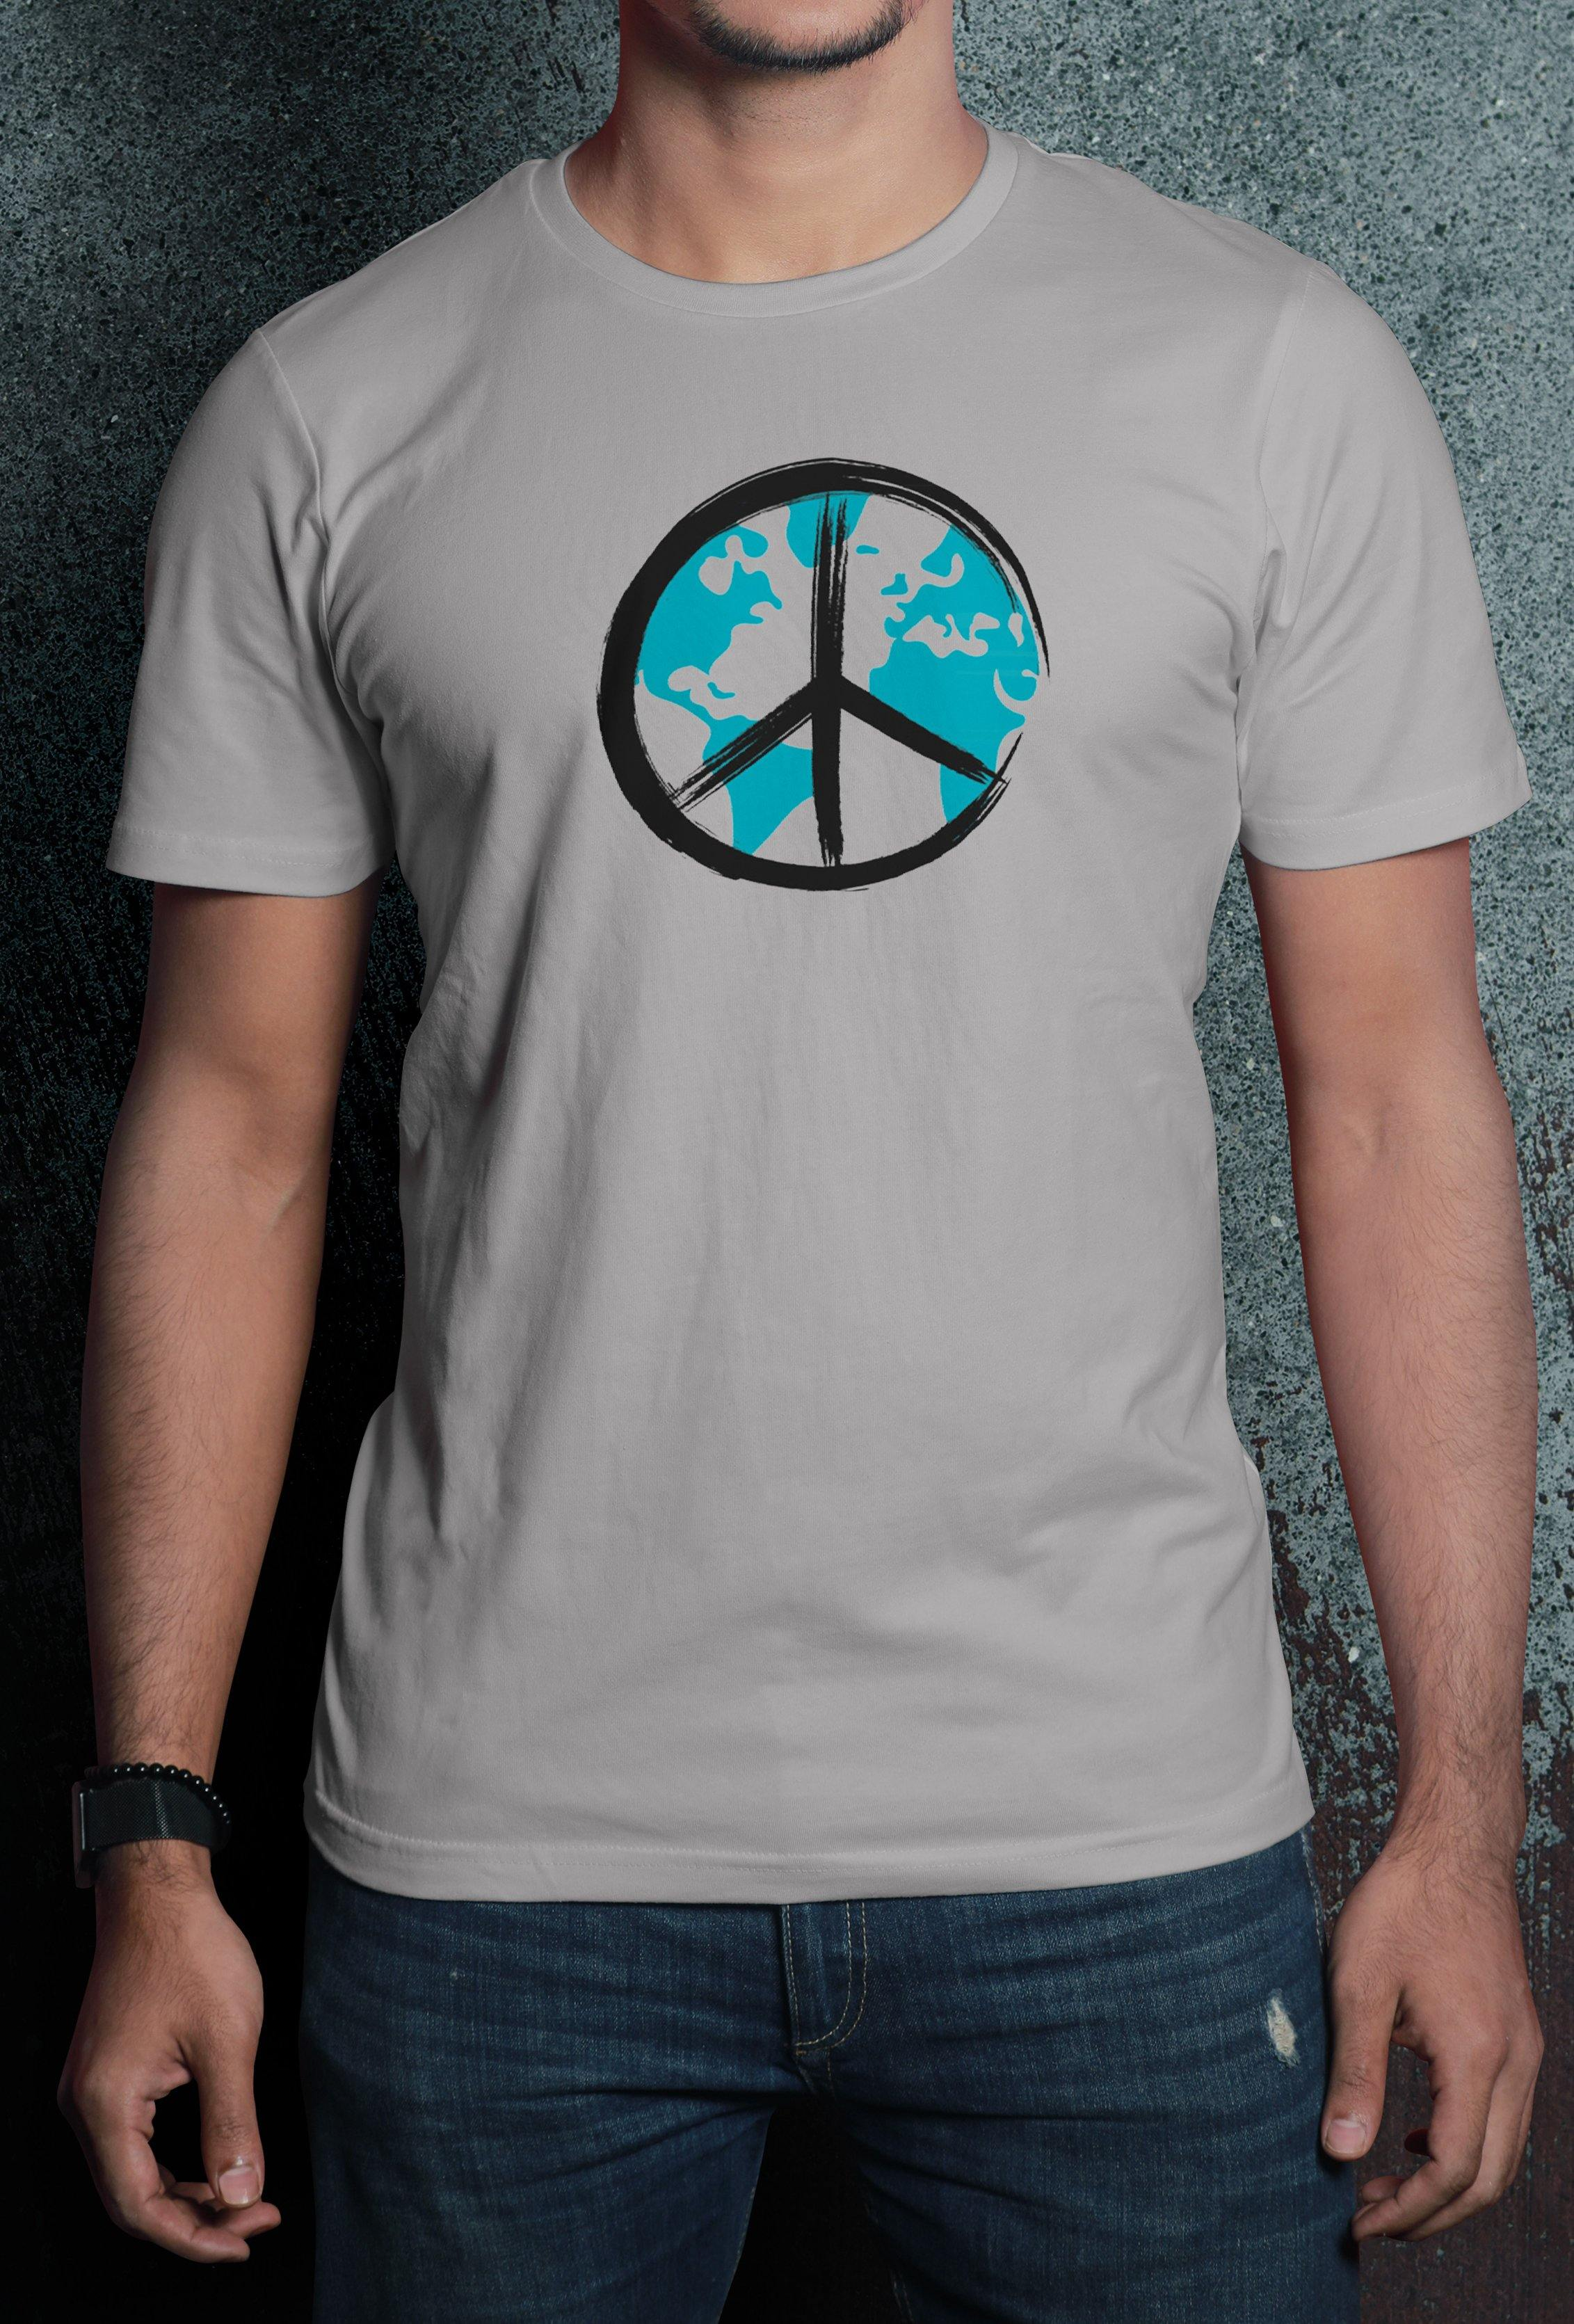 Globe Print Half Sleeve Premium Quality Cotton T-Shirt - thewardrobe-store-in